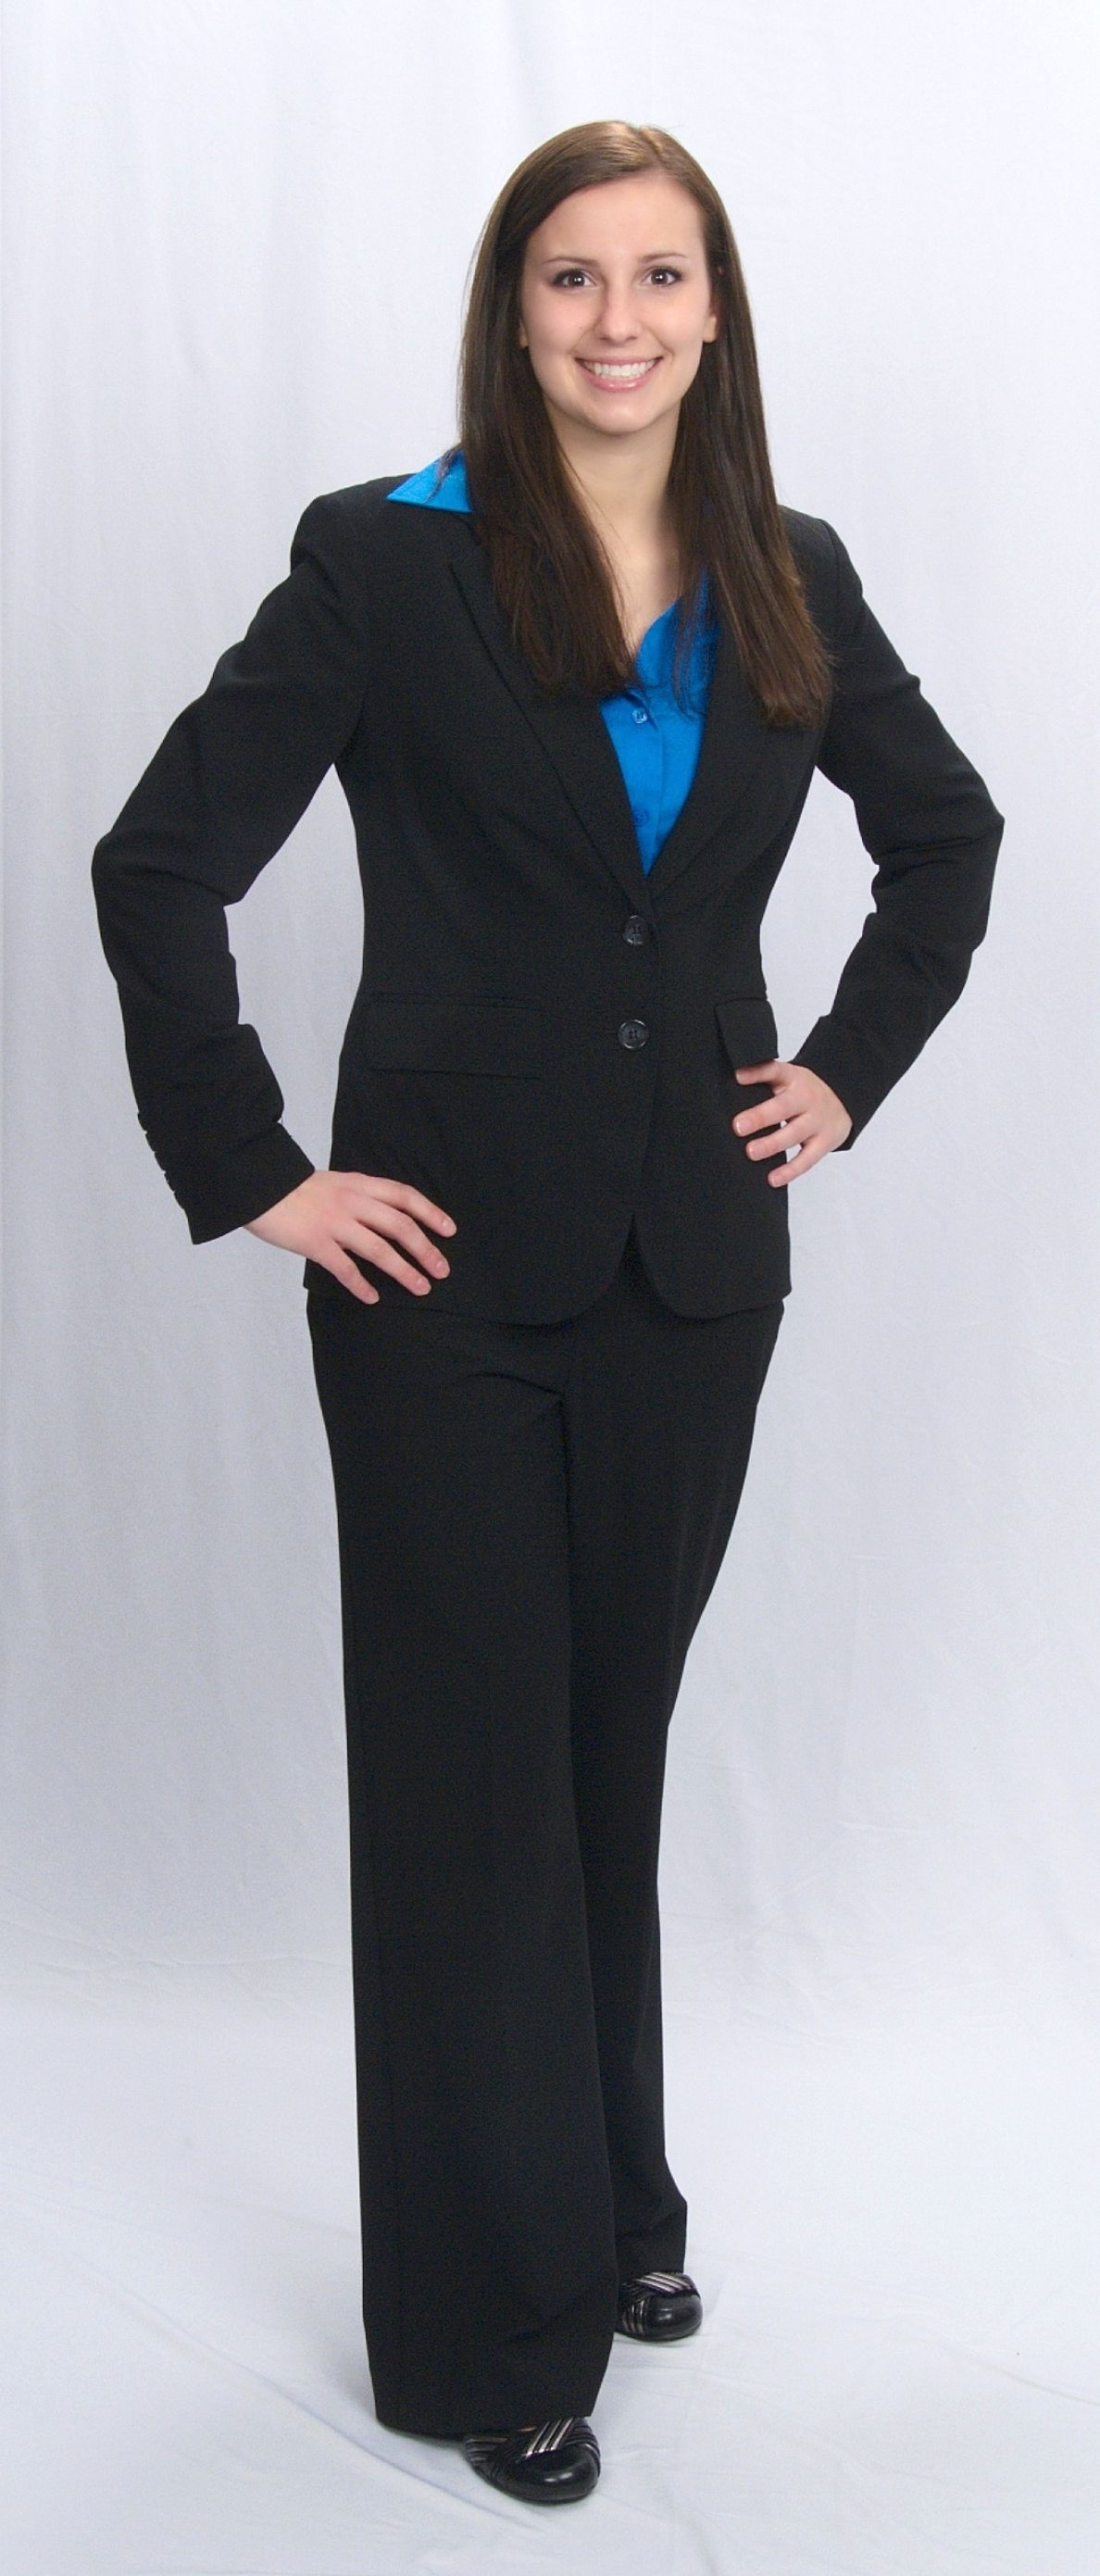 a very professional interview outfit matching suit set plain business professional attire for women google search